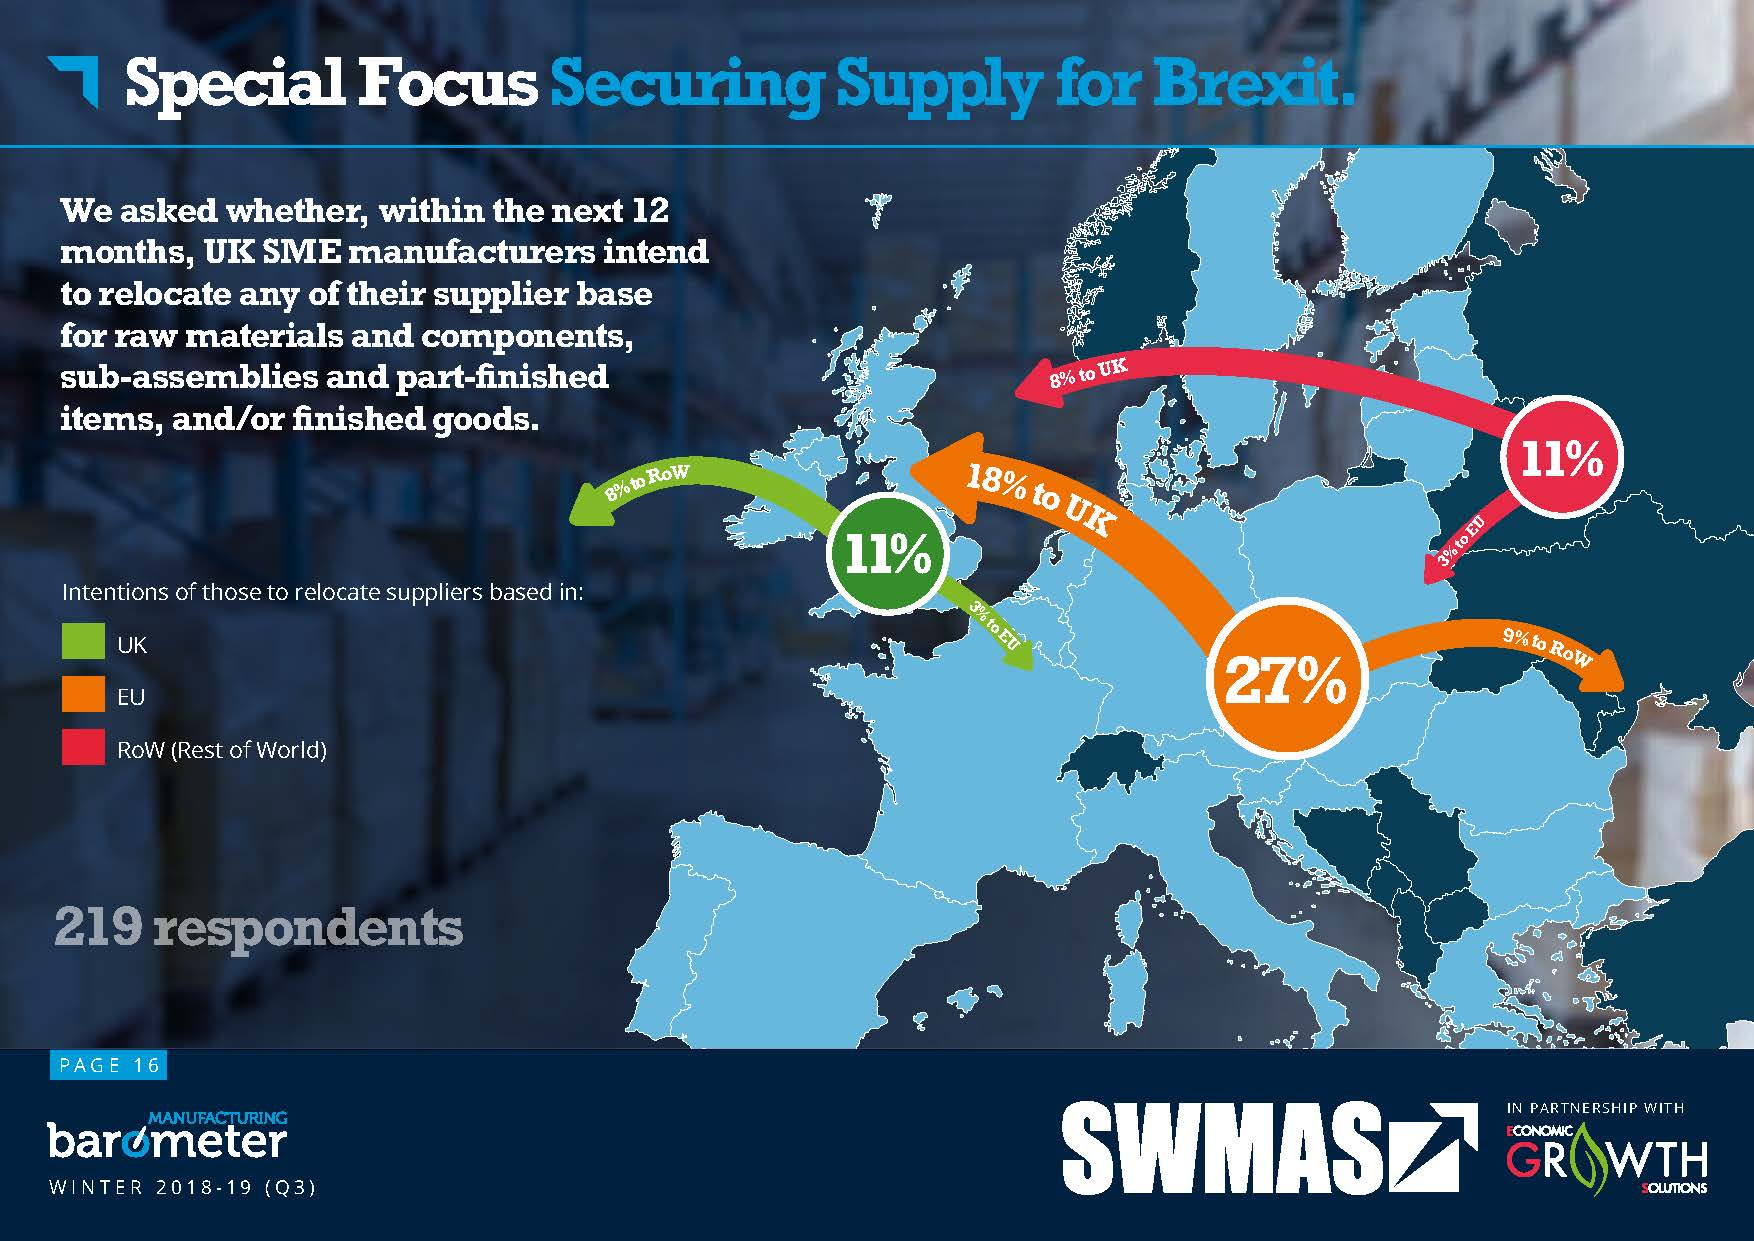 Image showing how UK SME manufacturers want to relocate their supply base in preparation for Brexit